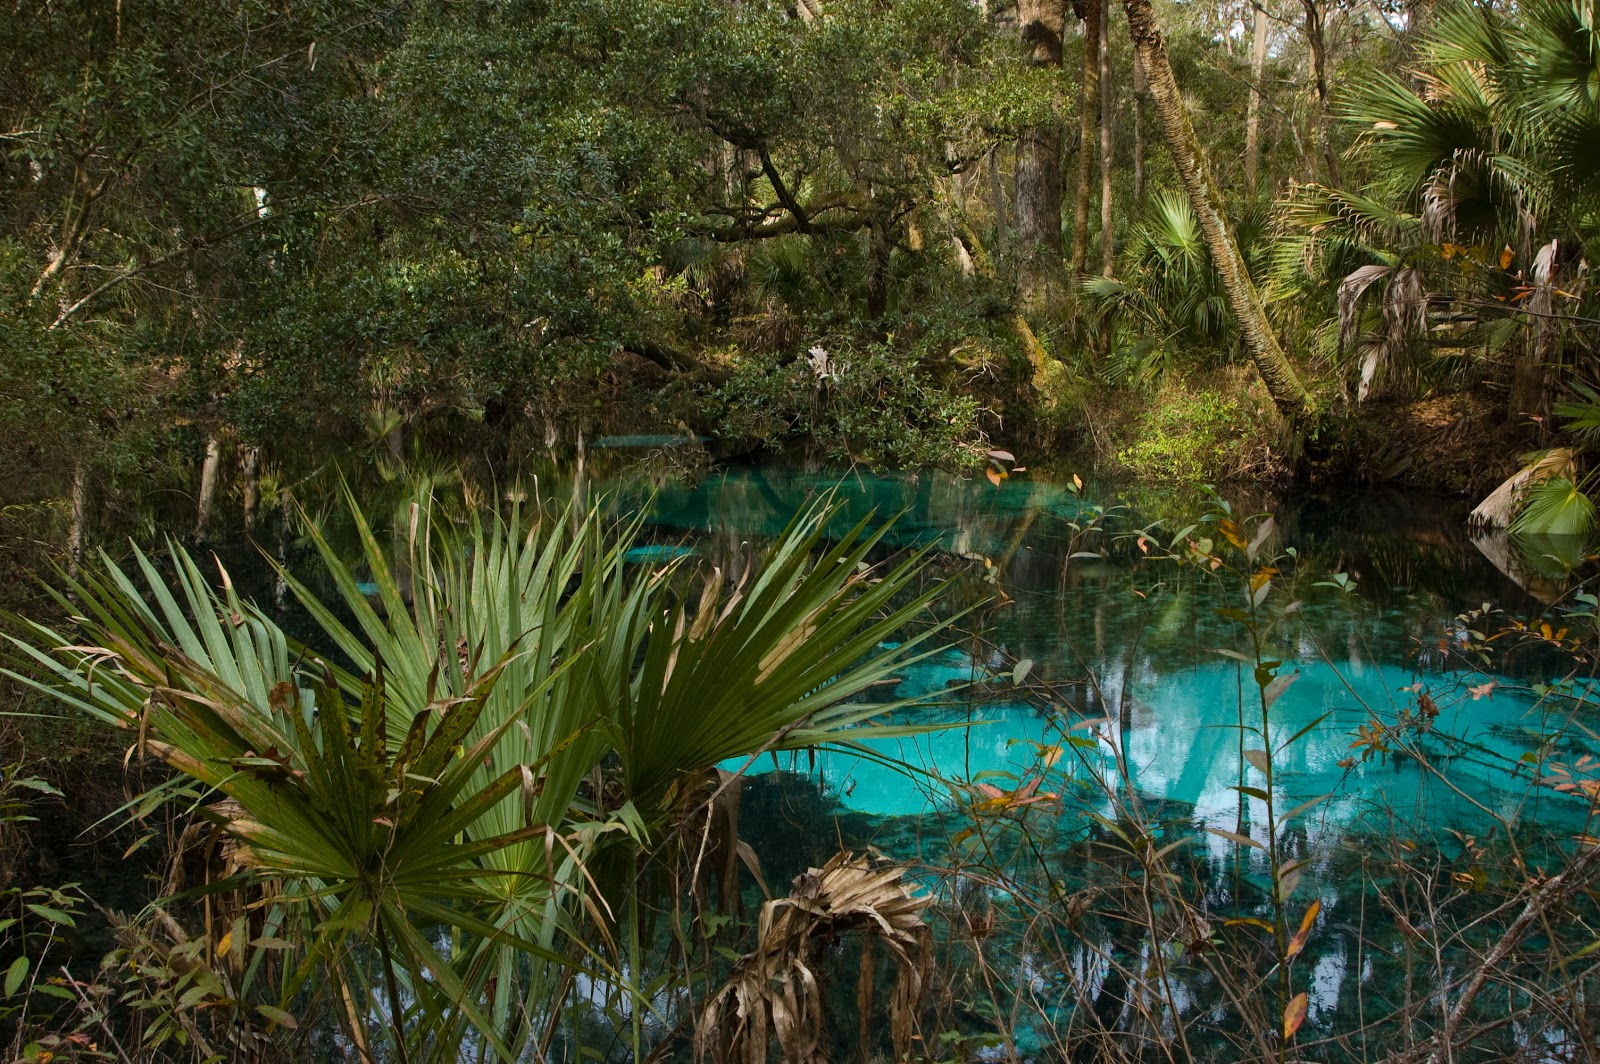 fern hammock springs  this spring is located in juniper springs in the ocala national forest  it is reached by a short boardwalk running besides the juniper     florida native photography  fern hammock springs  rh   floridanativephotography